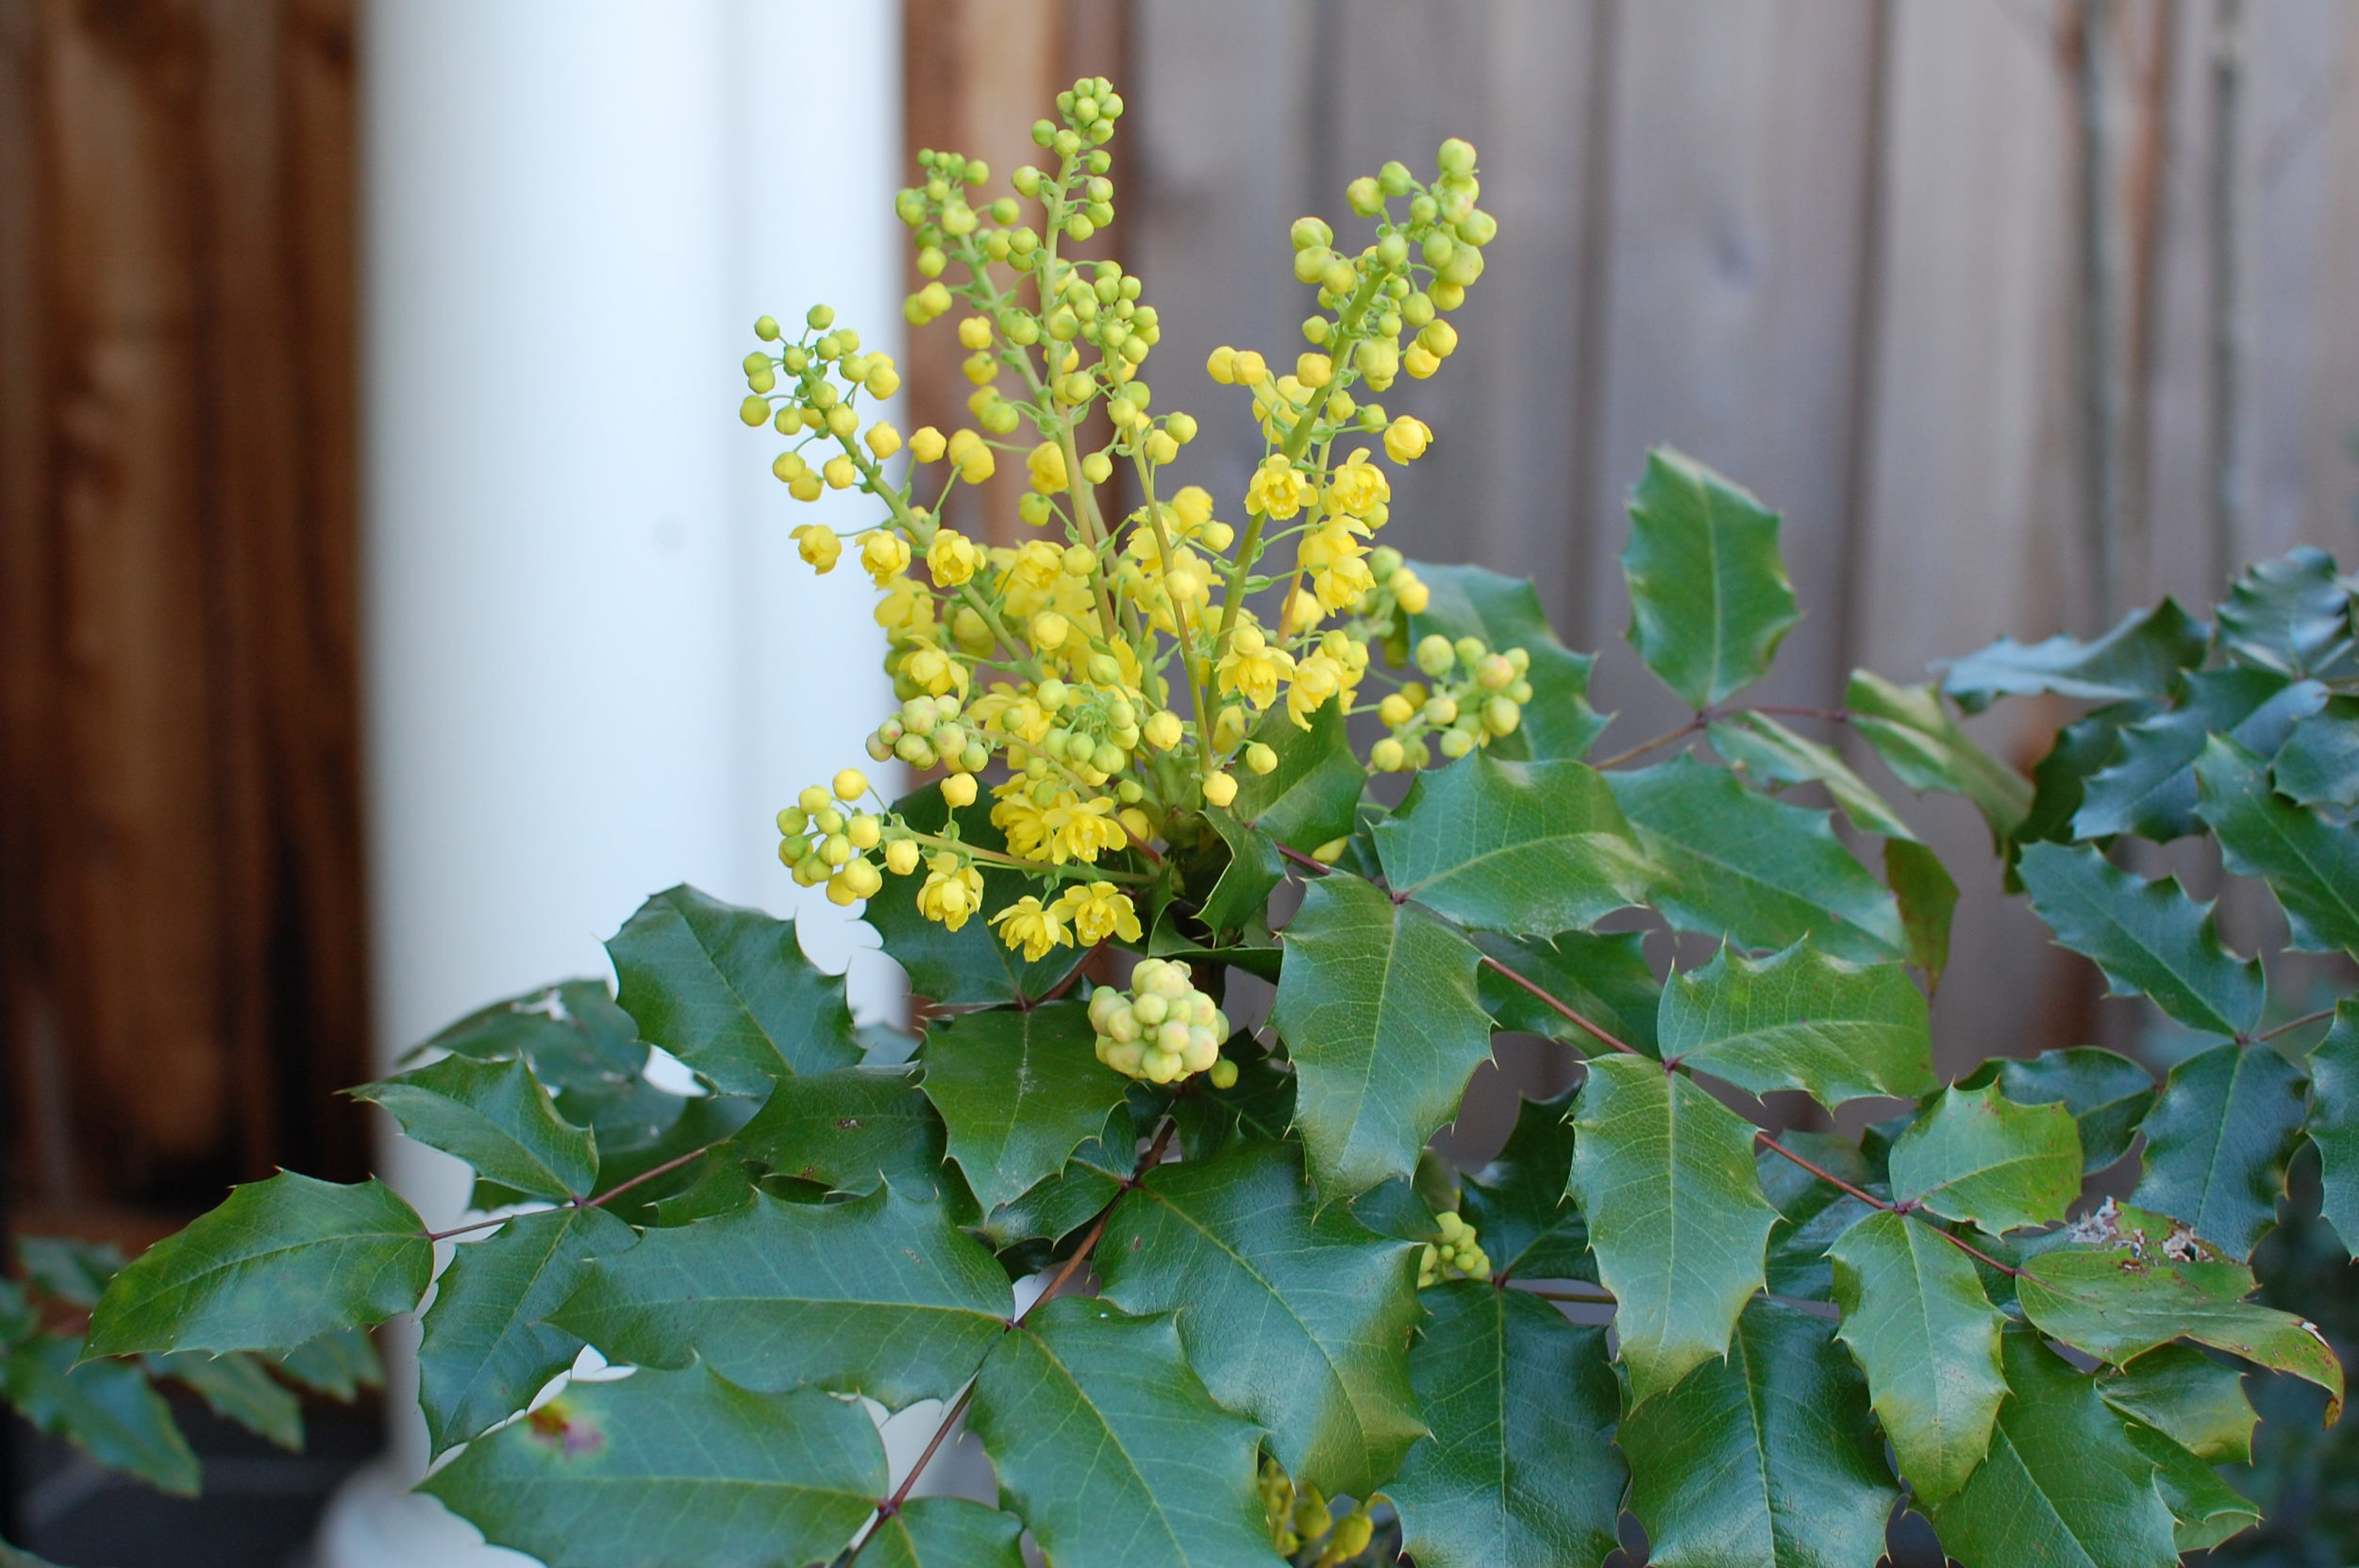 oregon-grape-flowers.JPG